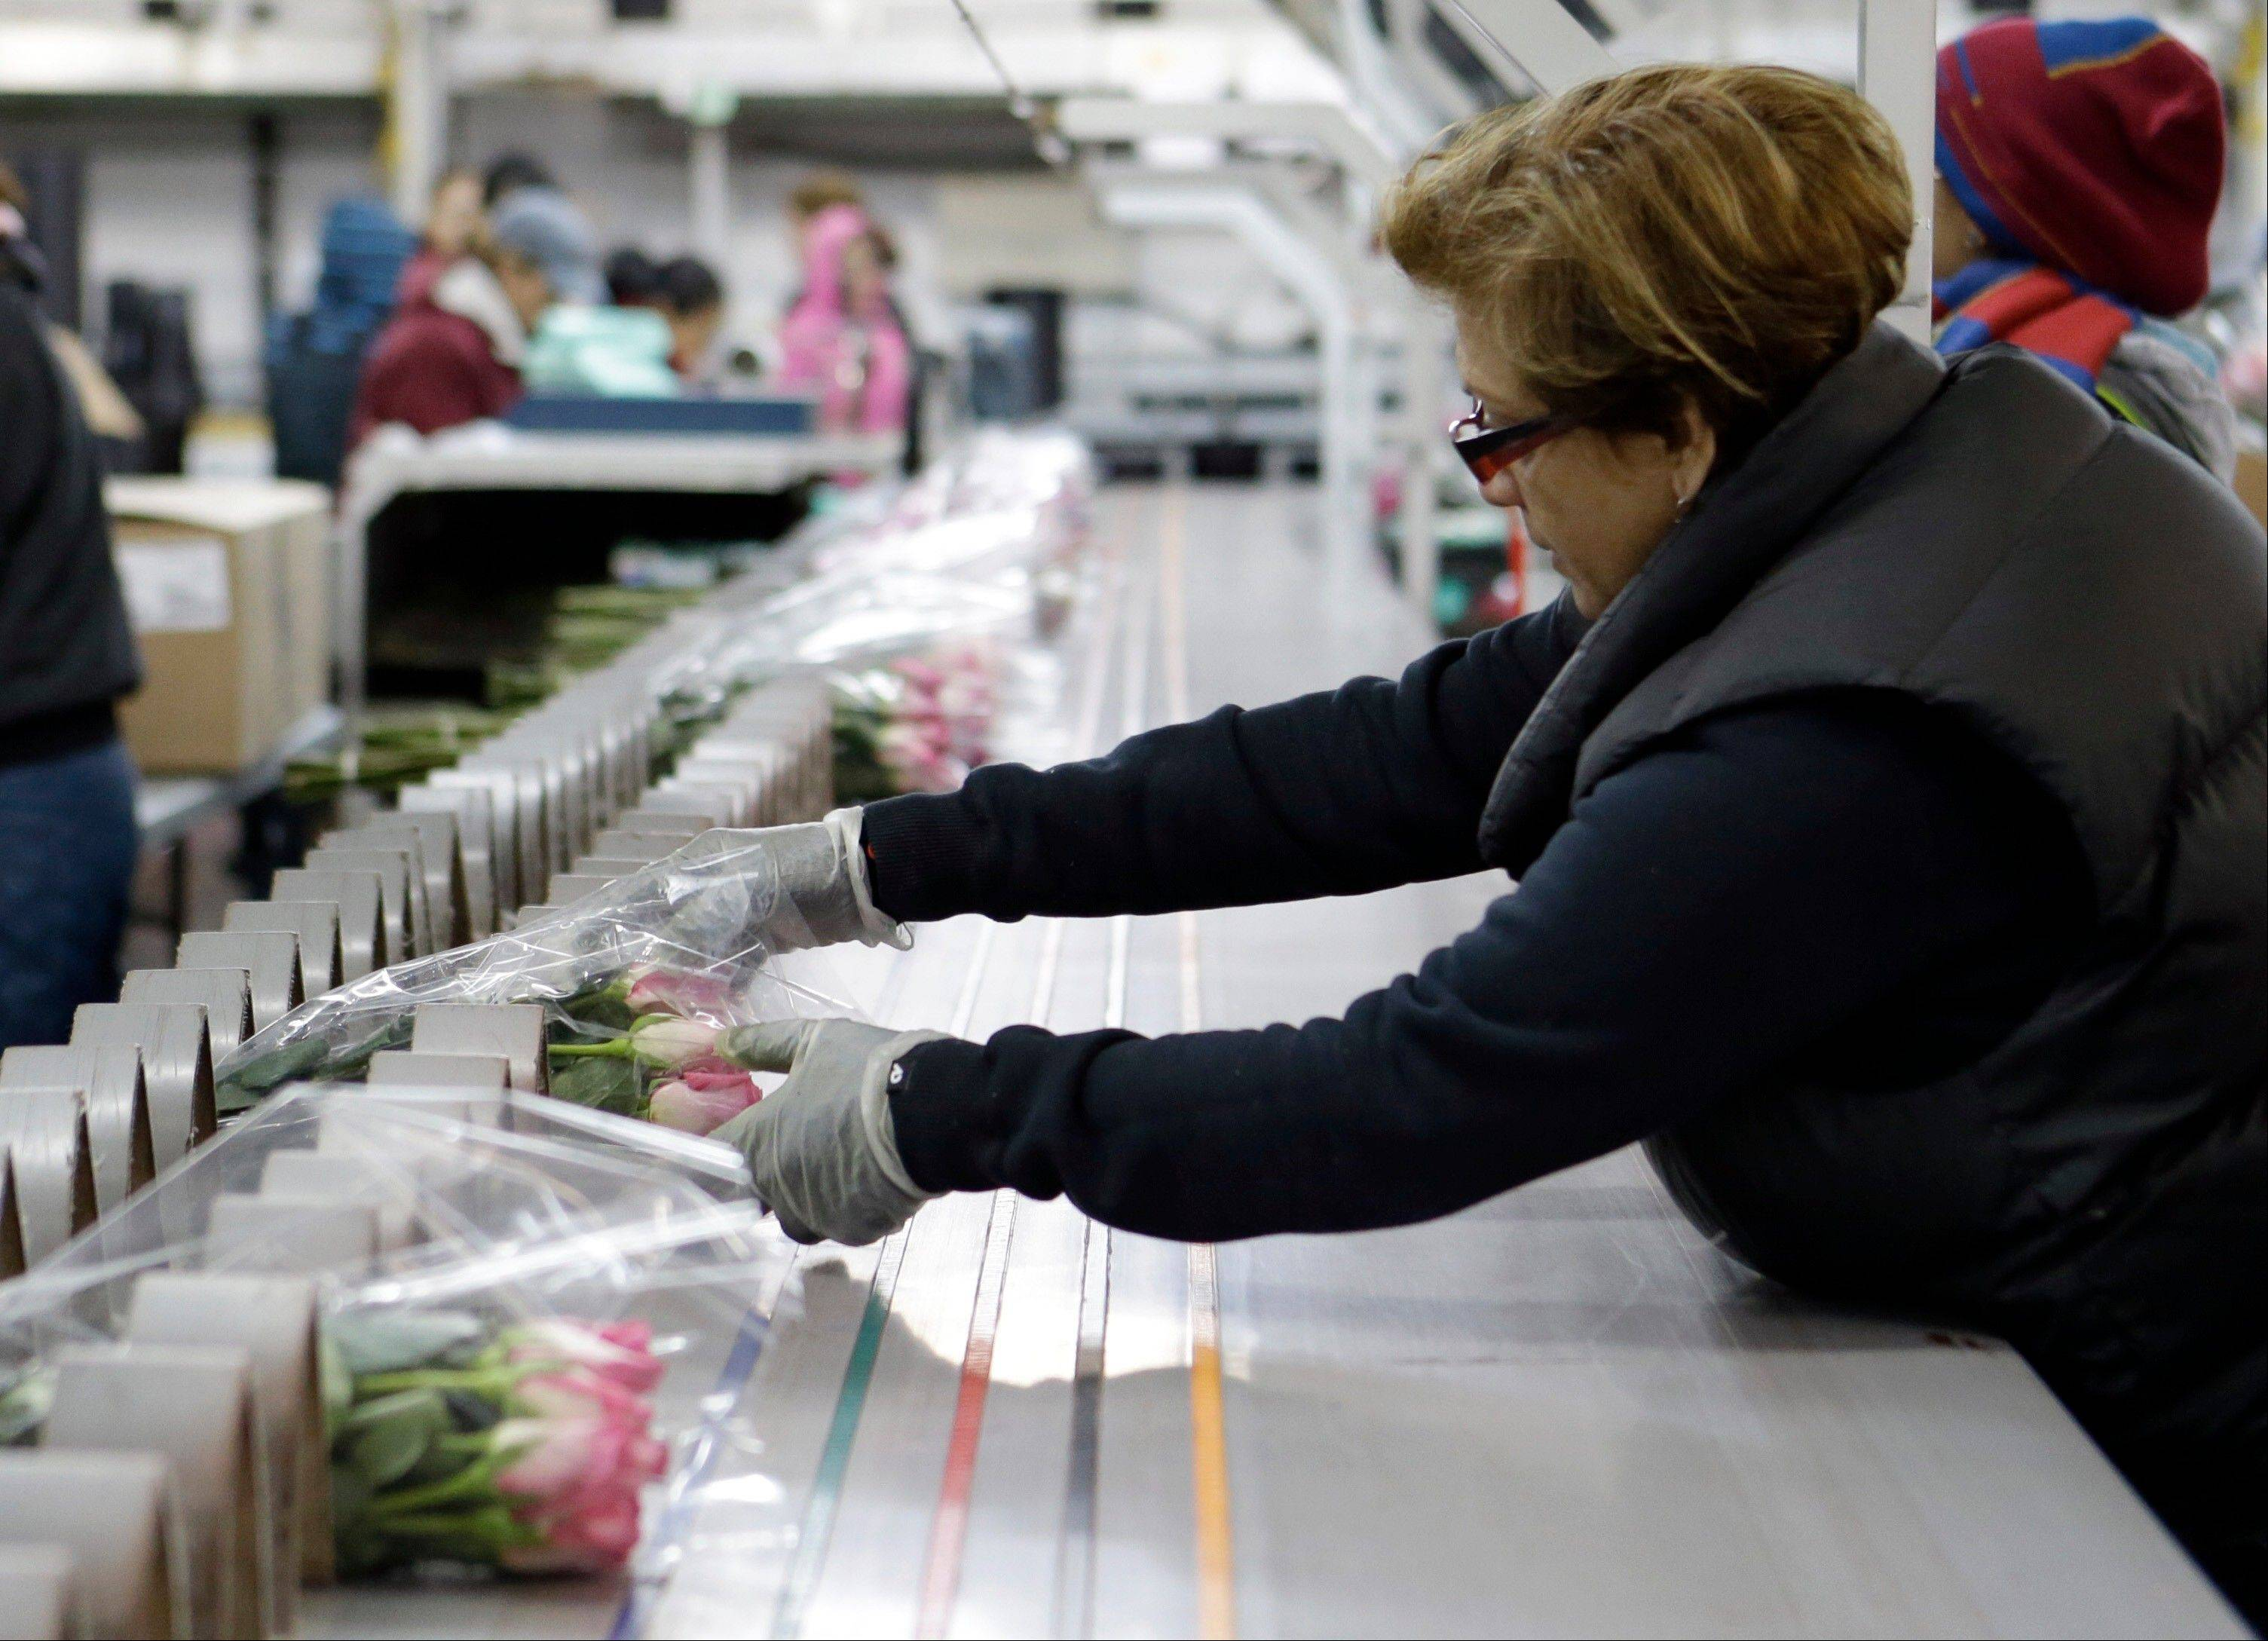 In this Thursday, Feb. 7, 2013, photo, workers at a floral import company prepare flowers for distribution to flower resellers throughout the country, in Miami. A measure of U.S. wholesale prices rose in February by the most in five months, pushed higher by more expensive gas and pharmaceuticals. But outside those increases, inflation was mild. The producer price index grew a seasonally adjusted 0.7 percent in February from January, the Labor Department said Thursday, March 14, 2013. That's up from 0.2 percent in the previous month. Wholesale gas prices increased 7.2 percent.